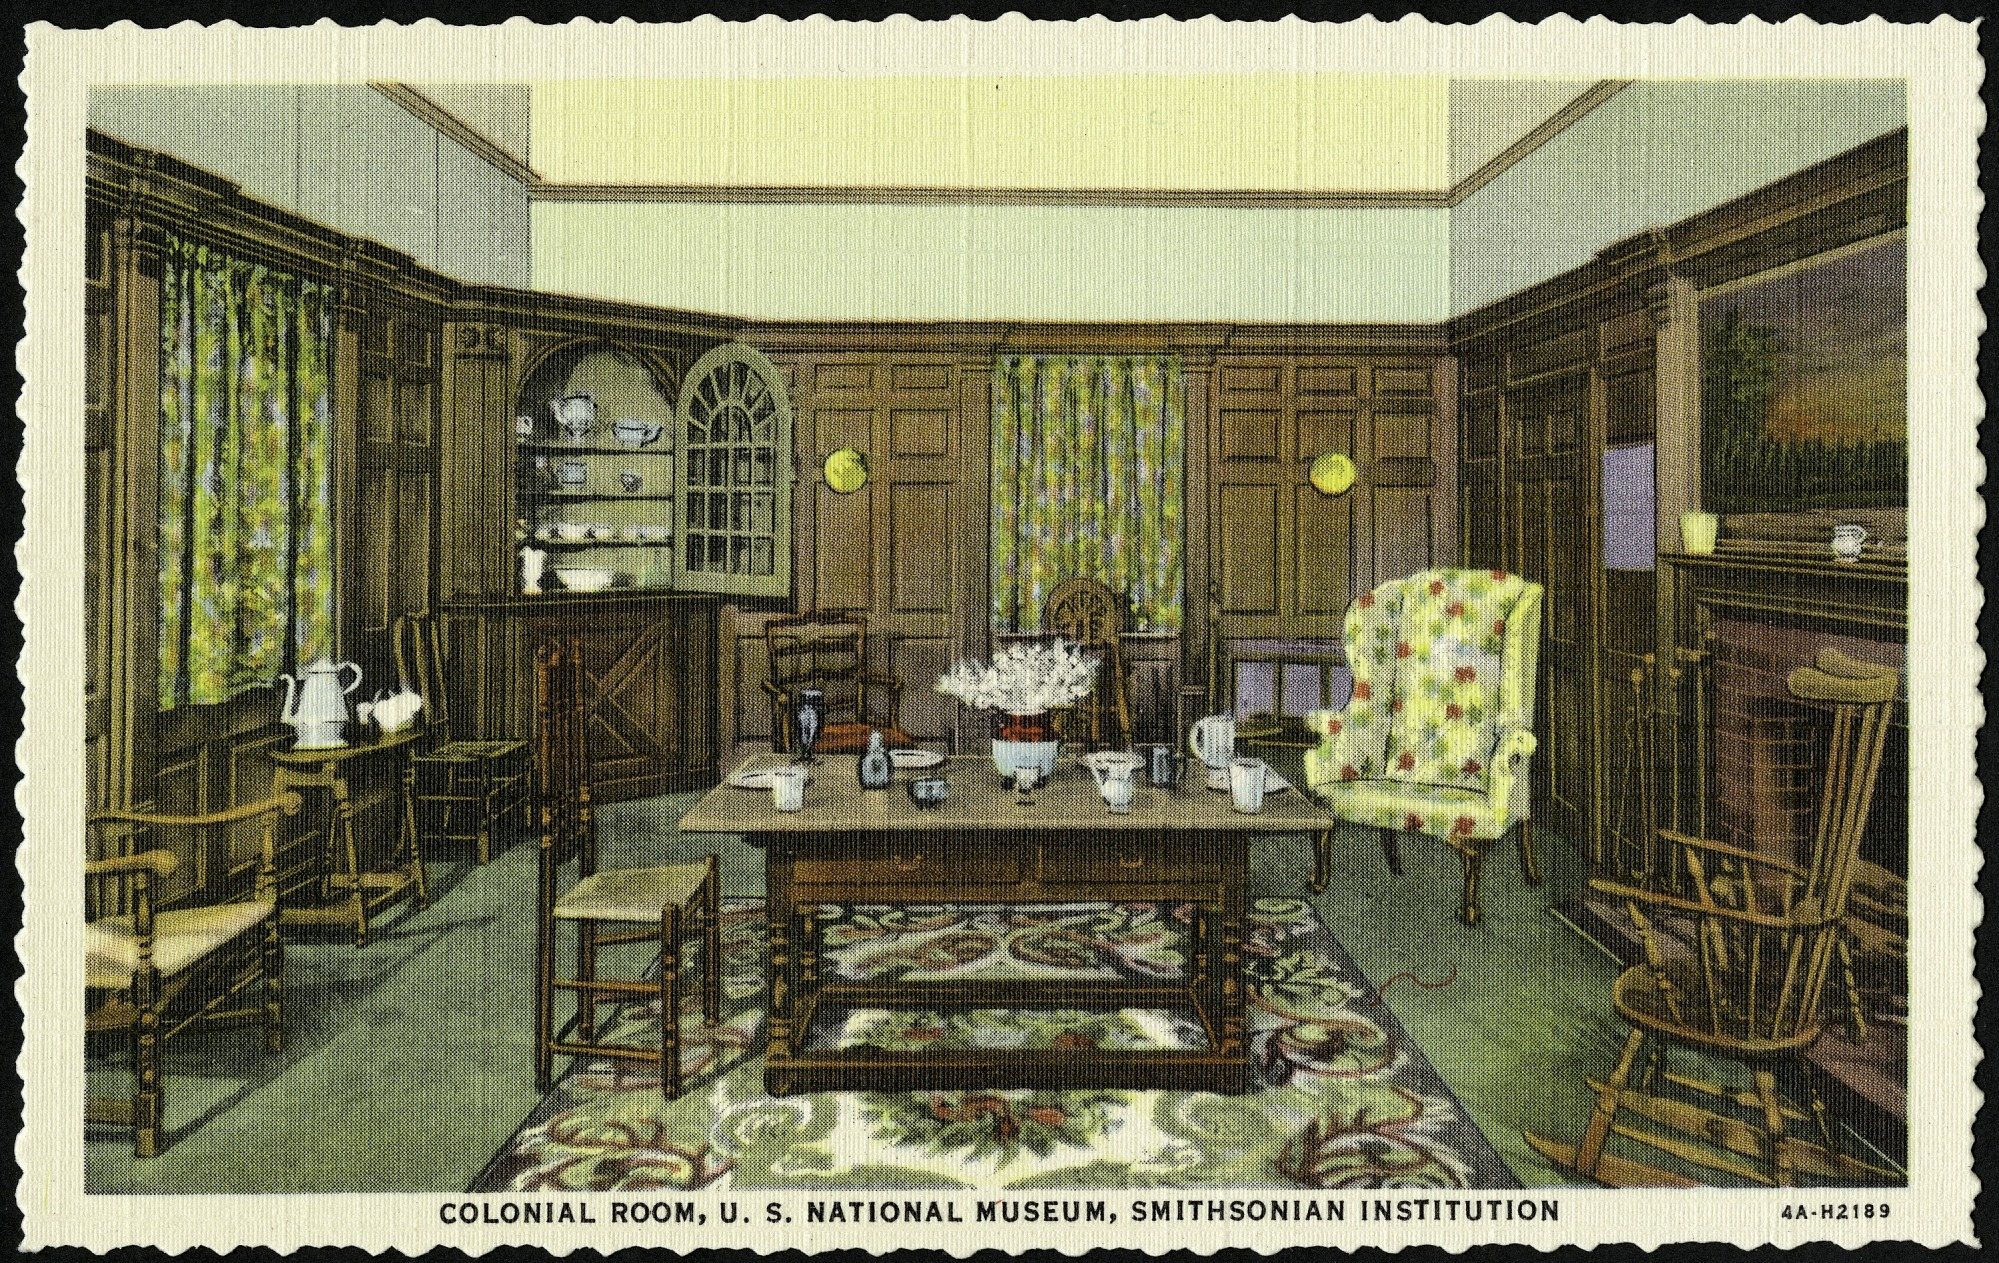 Postcard of the Colonial Room in the United States National Museum, by Curt Teich & Co, 1934, Smithsonian Archives - History Div, SIA2013-07221 (front) and SIA2013-07222 (back).